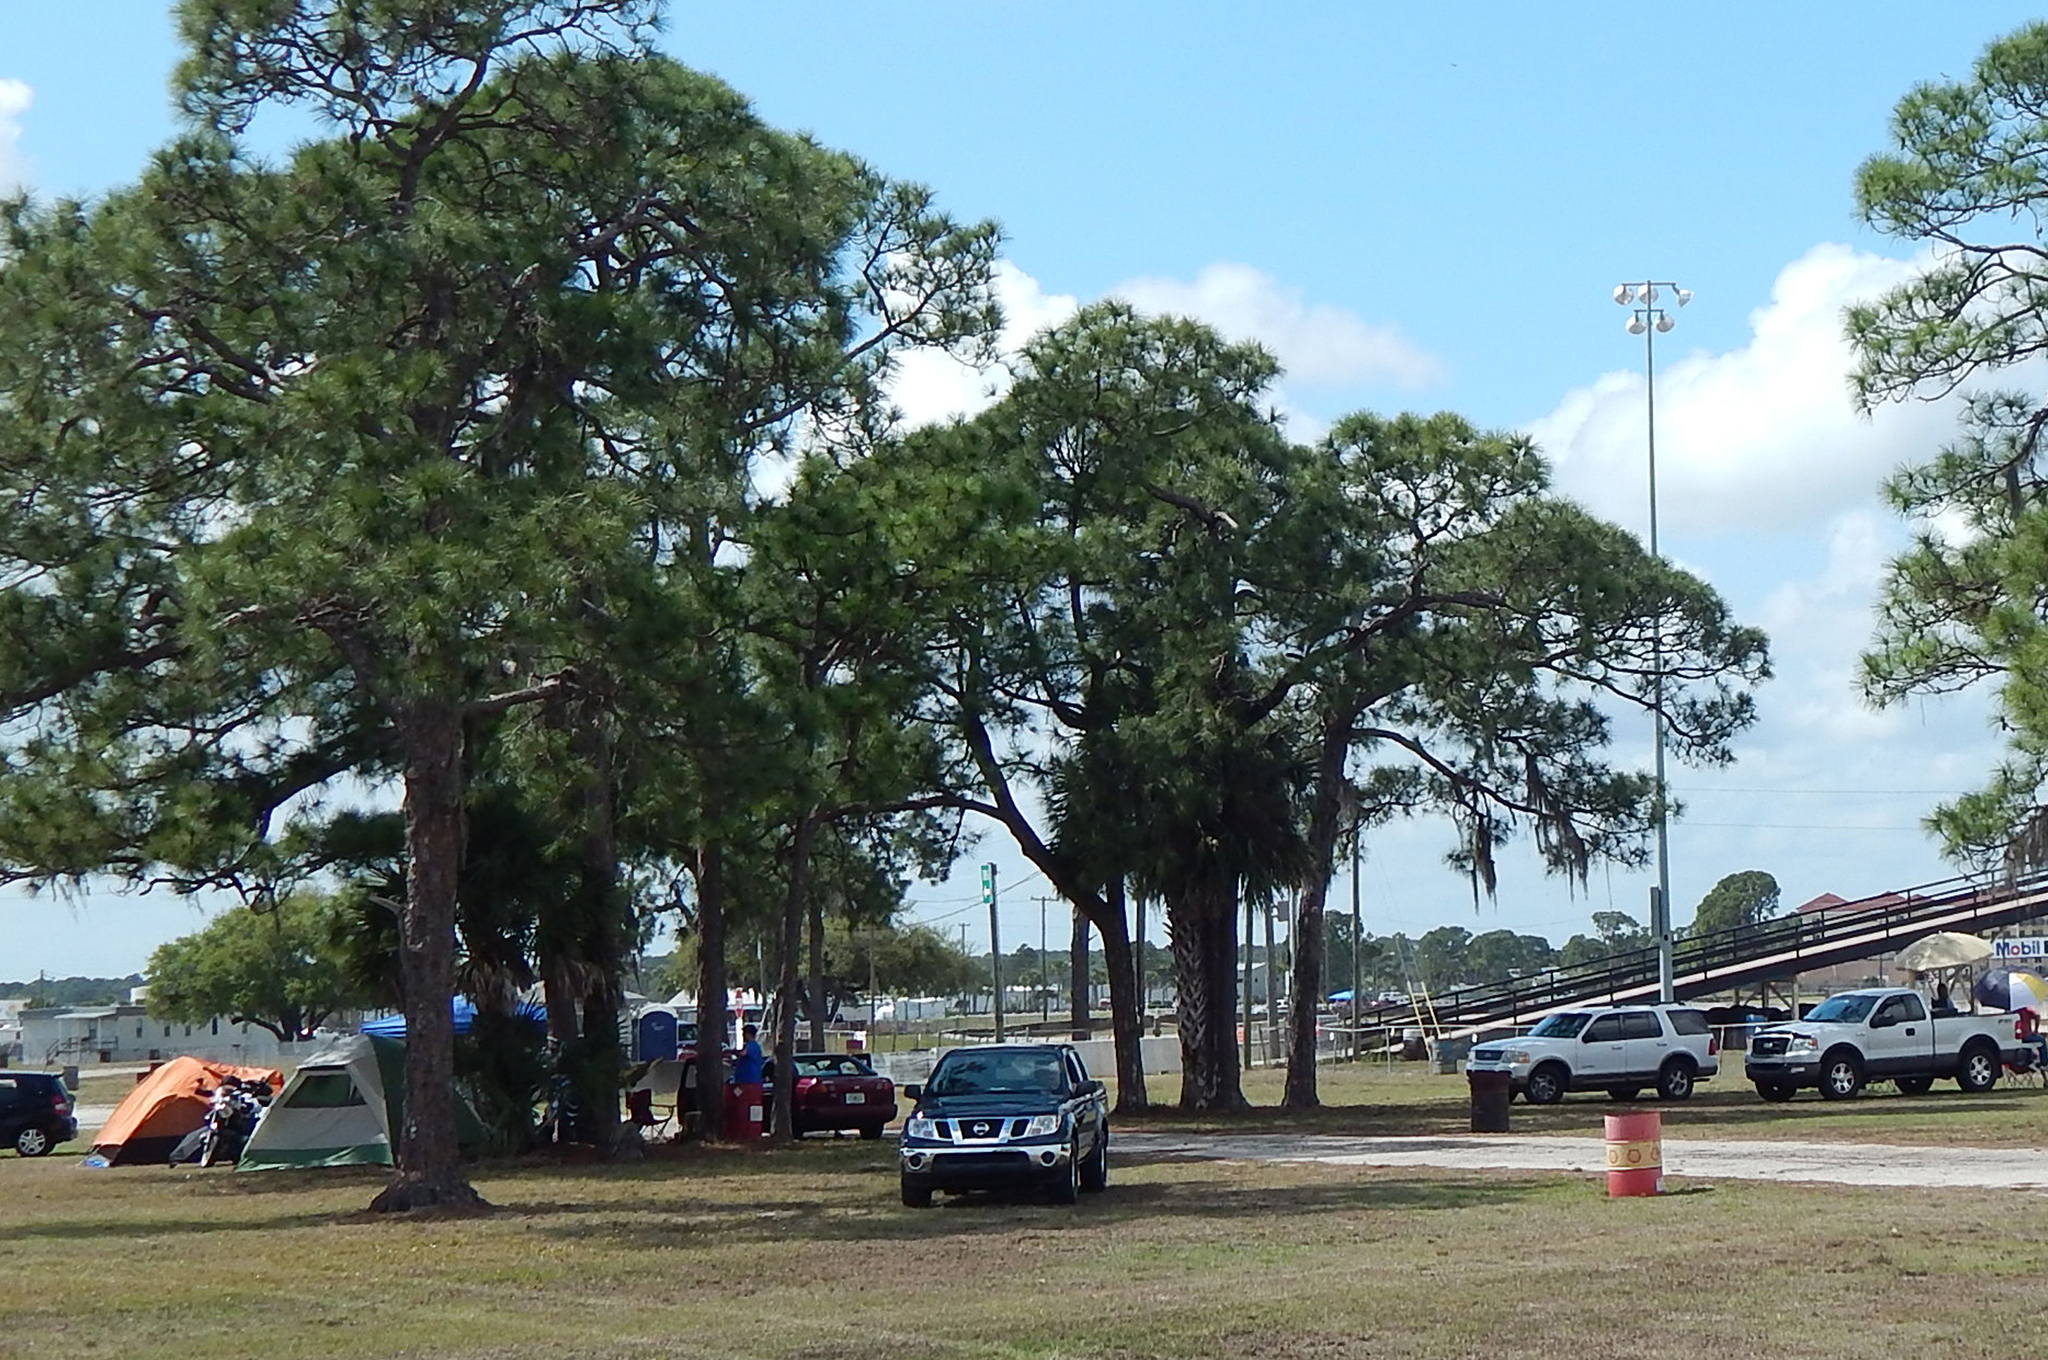 At Sebring, there's plenty of room to tent camp or park a vehicle under shade trees or right next to the track.